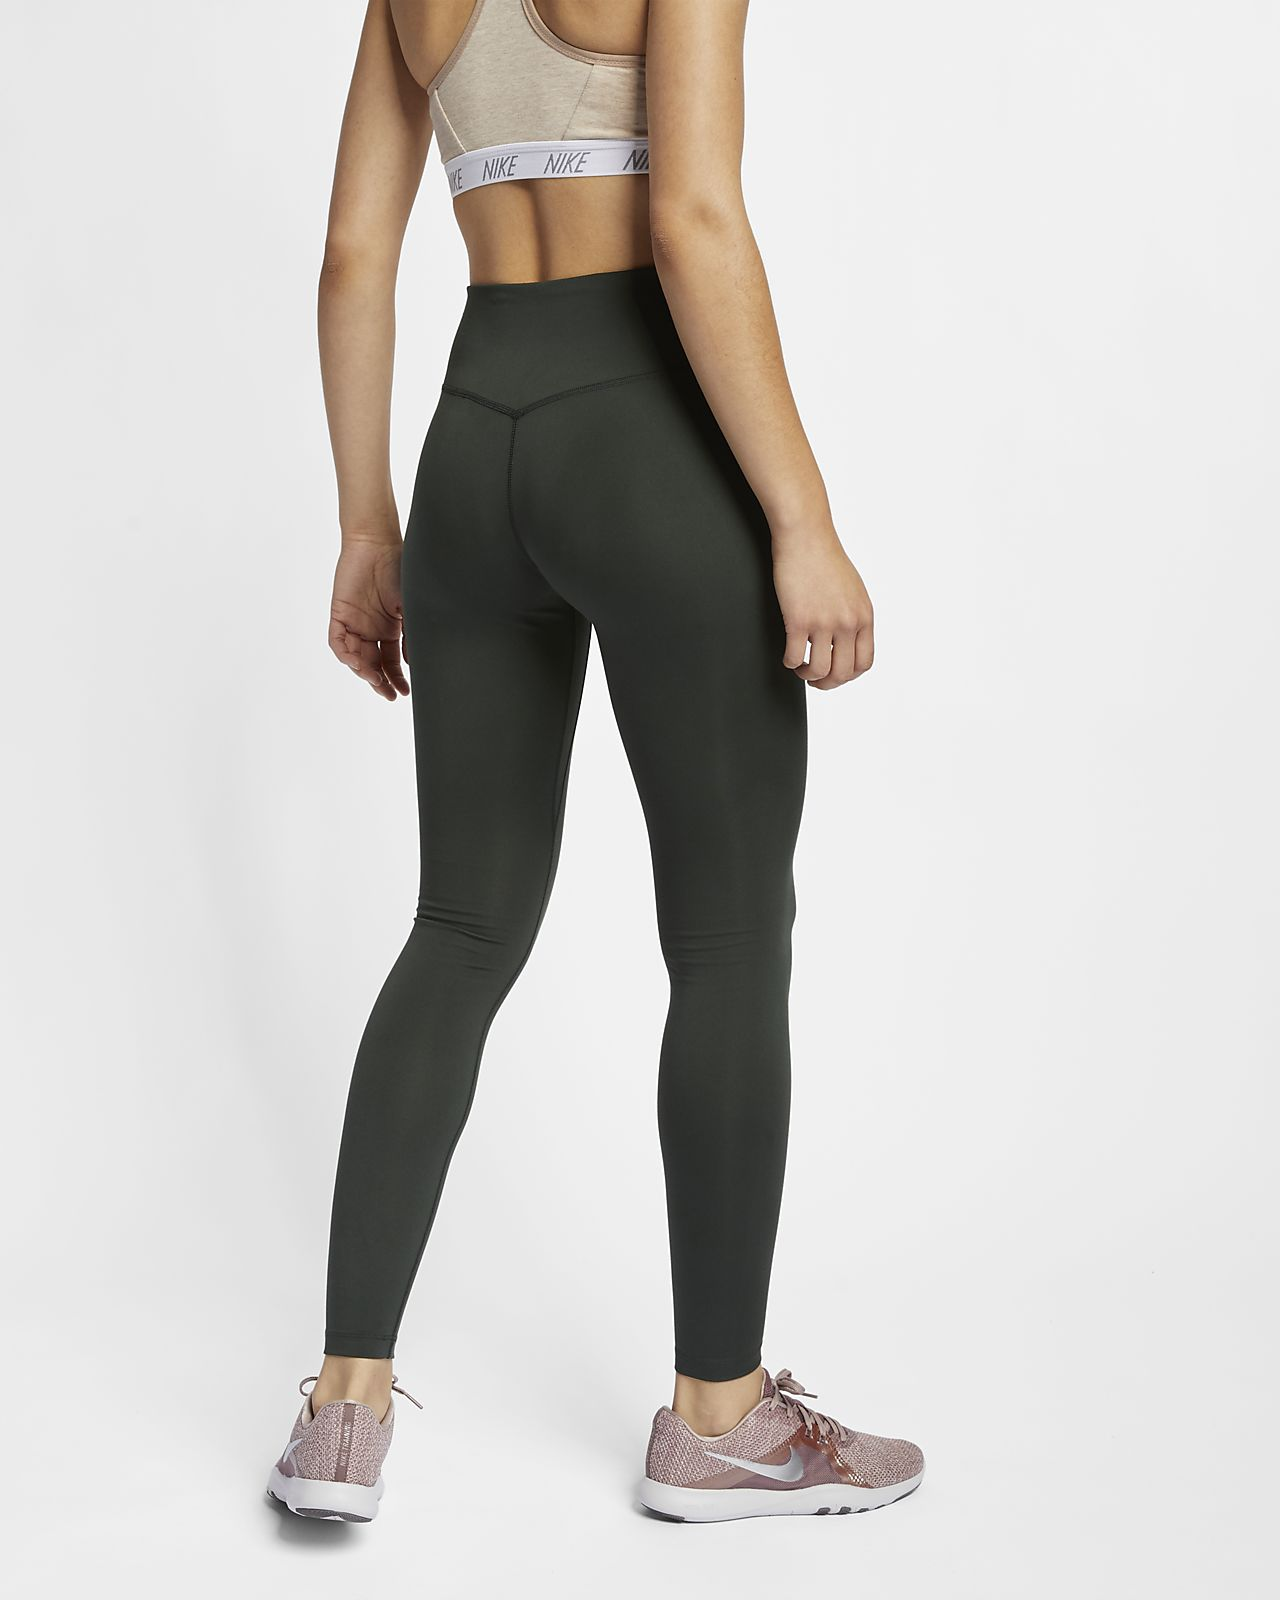 hot sale online 47f1a af9a4 Low Resolution Nike One Women s Tights Nike One Women s Tights